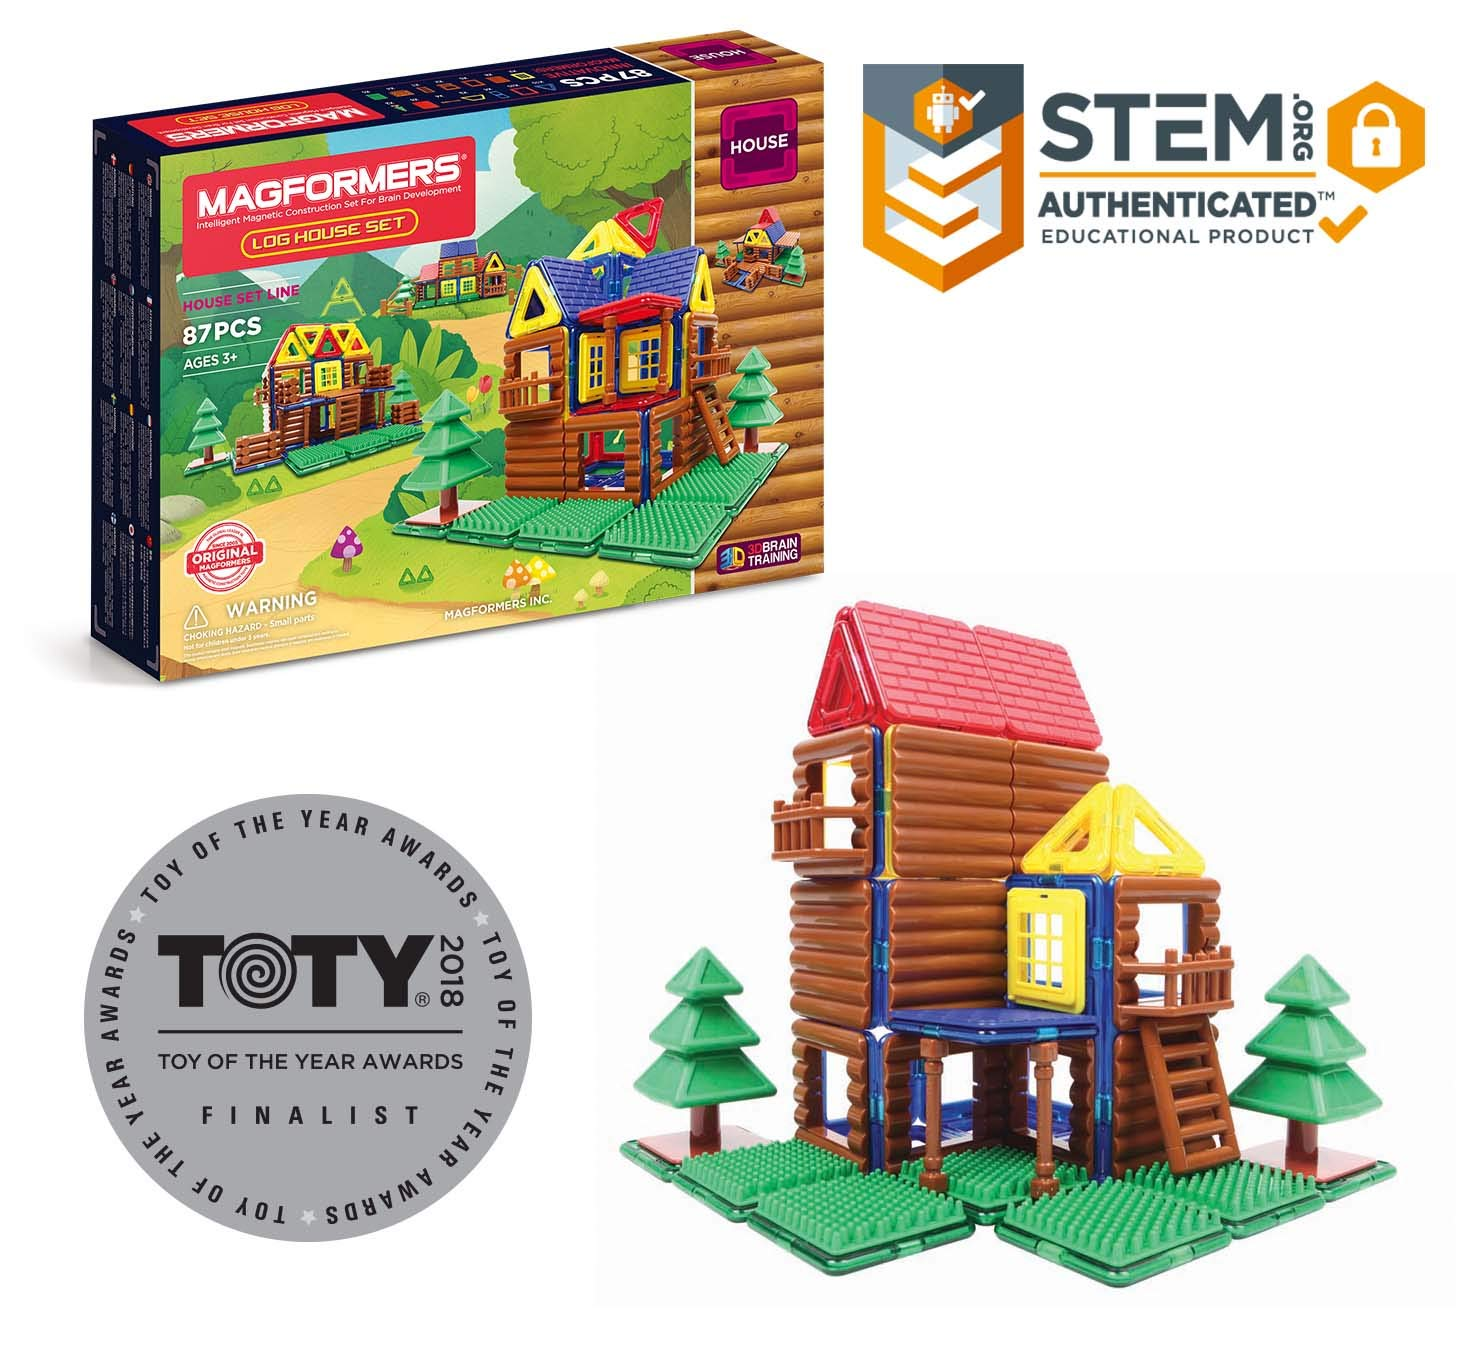 Magformers Log Cabin Toy Set, Building Magnetic Toy Log Cabin and Tree House for Kids, Set of 87 Pieces